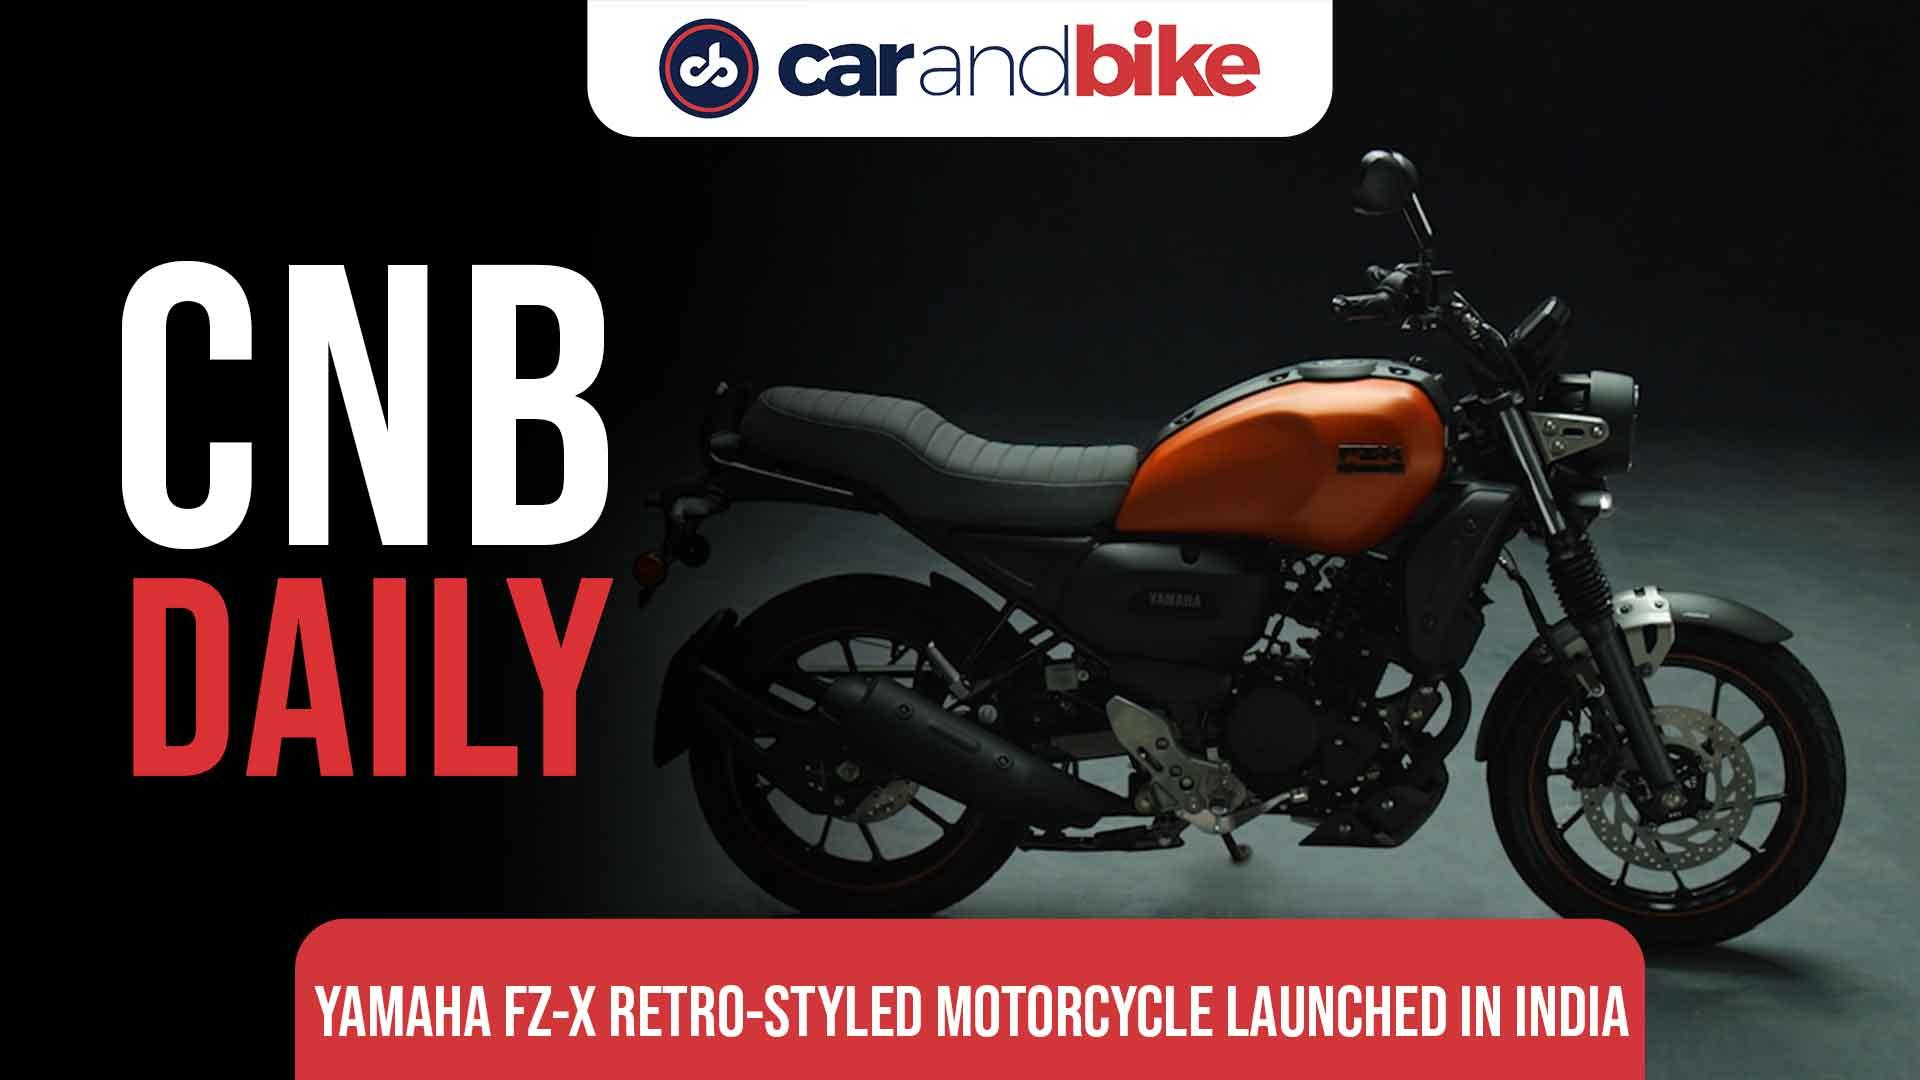 Yamaha FZ-X Retro-Styled Motorcycle Launched In India